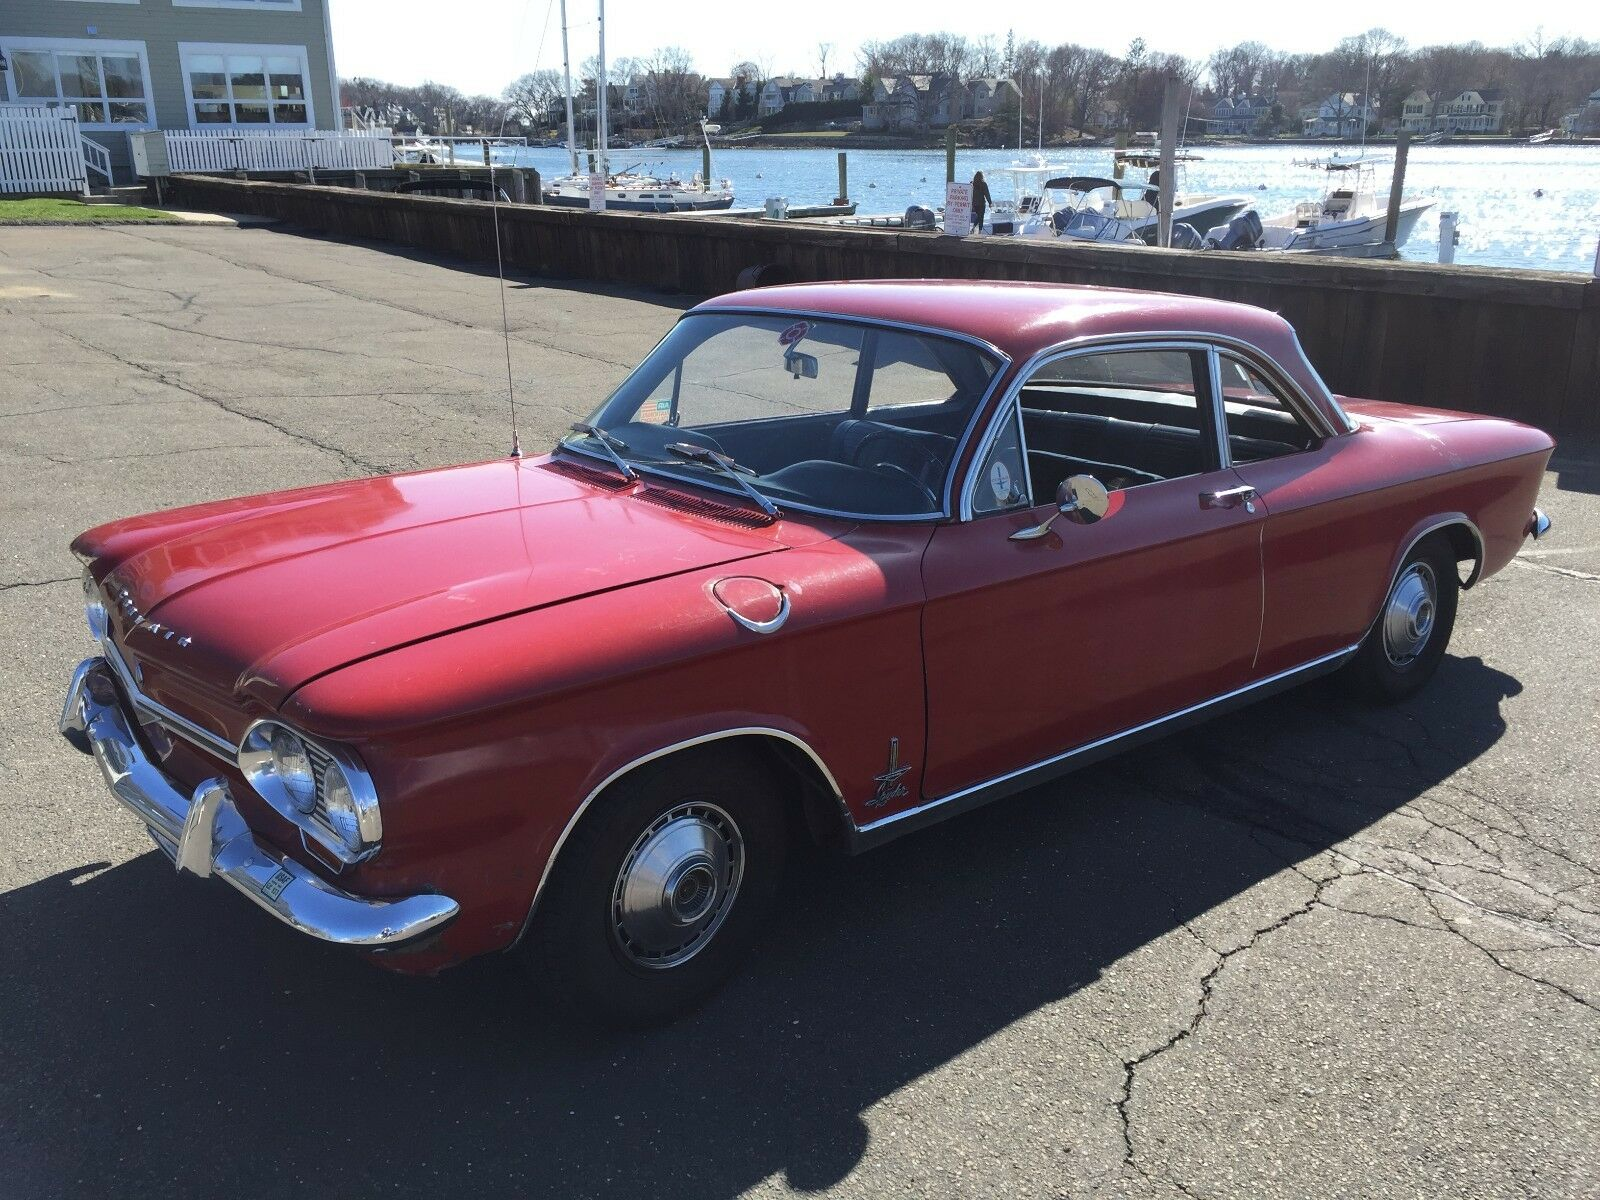 1964 Chevrolet Corvair Monza Spyder Classic Red 1964 Chevrolet Chevy Corvair Monza SPYDER 10,000 original miles